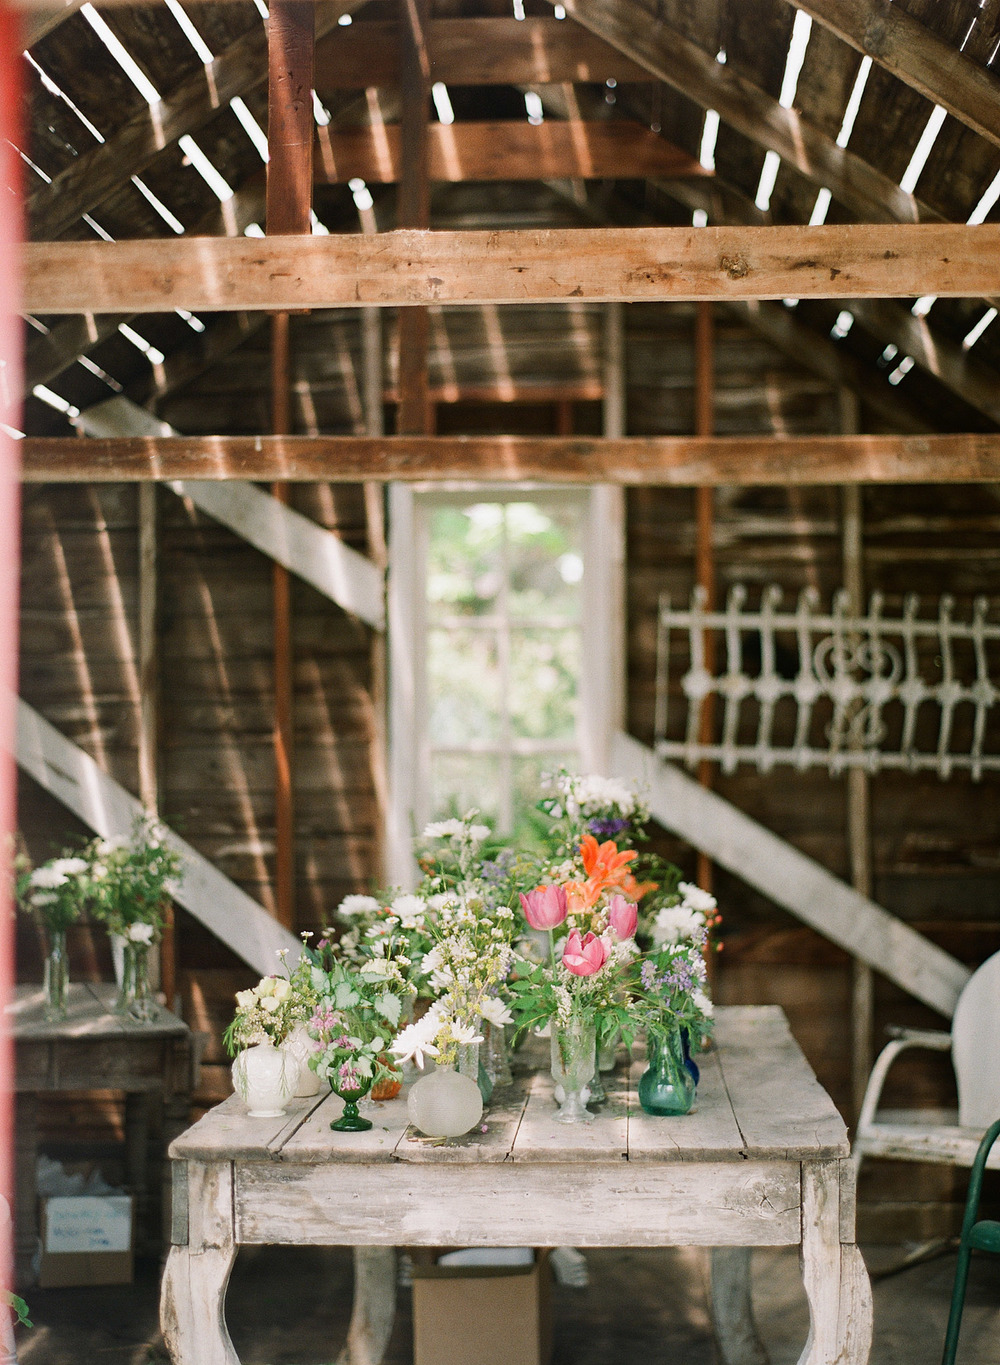 mis-matched vases for wedding flower center pieces wait in a barn while Destination Wedding photographer Lexia Frank photographs this springtime wedding on film at the Northwind Perennial Gardens in wisconsin